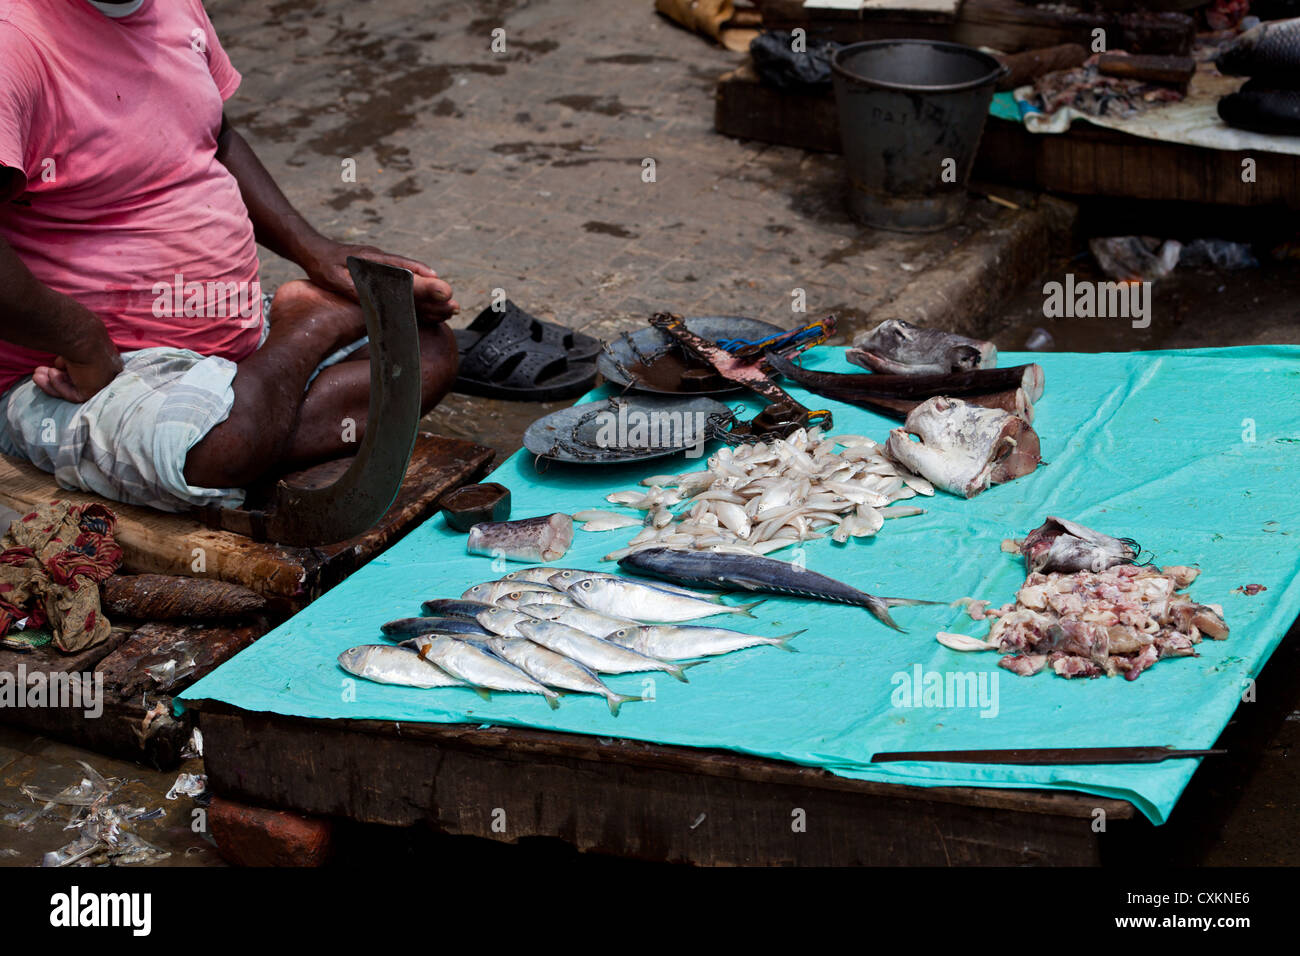 Scaling Fishes in the Street in Kolkata - Stock Image